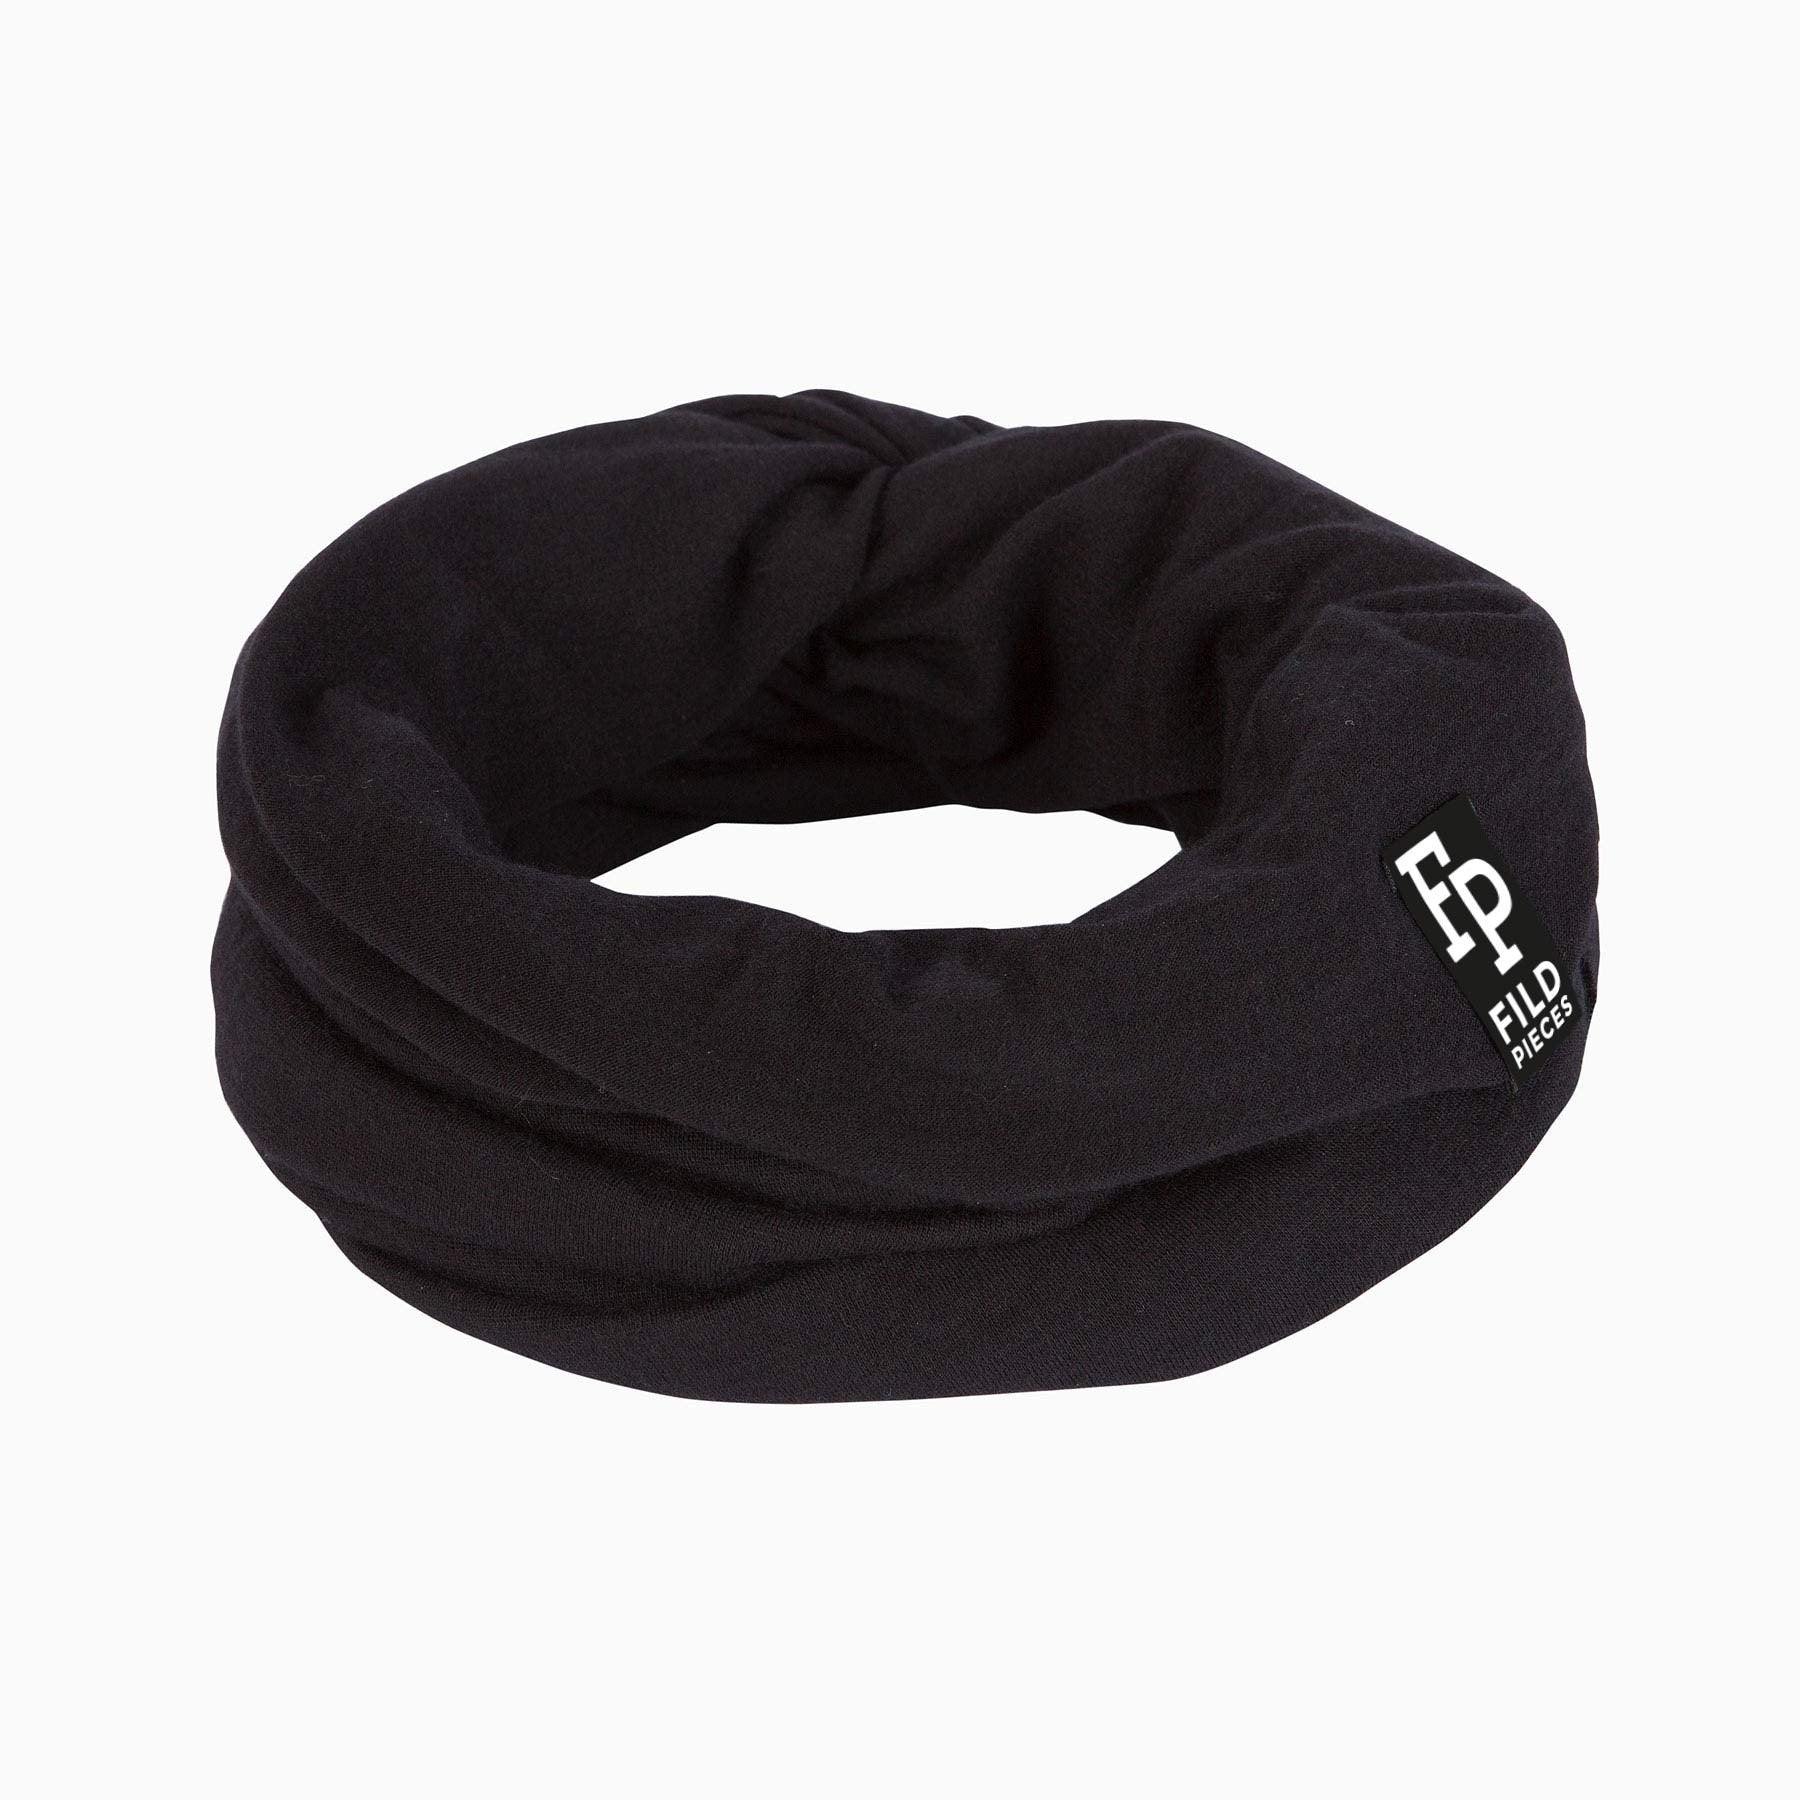 Tjorven Snood merino wool scarf black